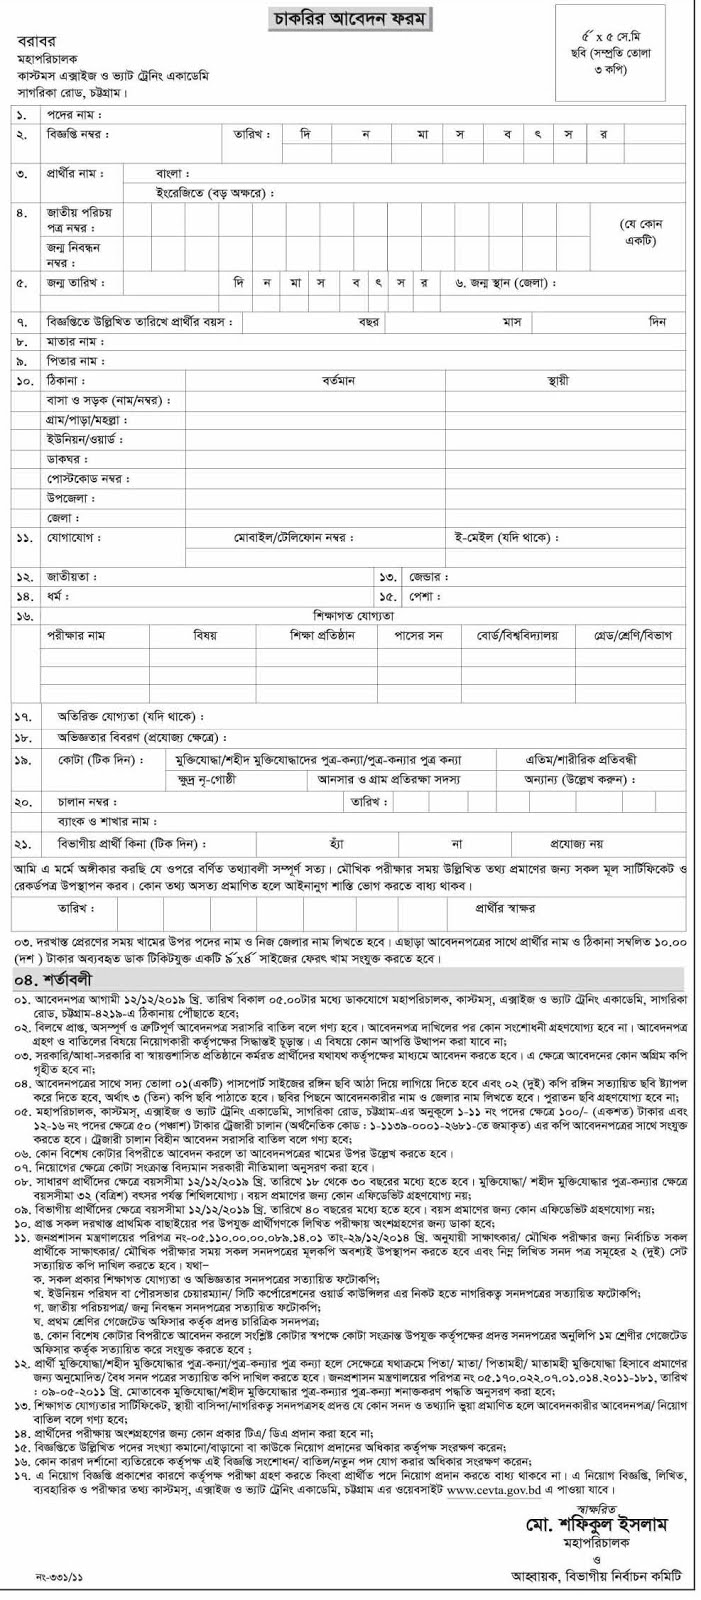 Bangladesh Customs, Excise & VAT Training Academy CEVTA Job Application Form Download